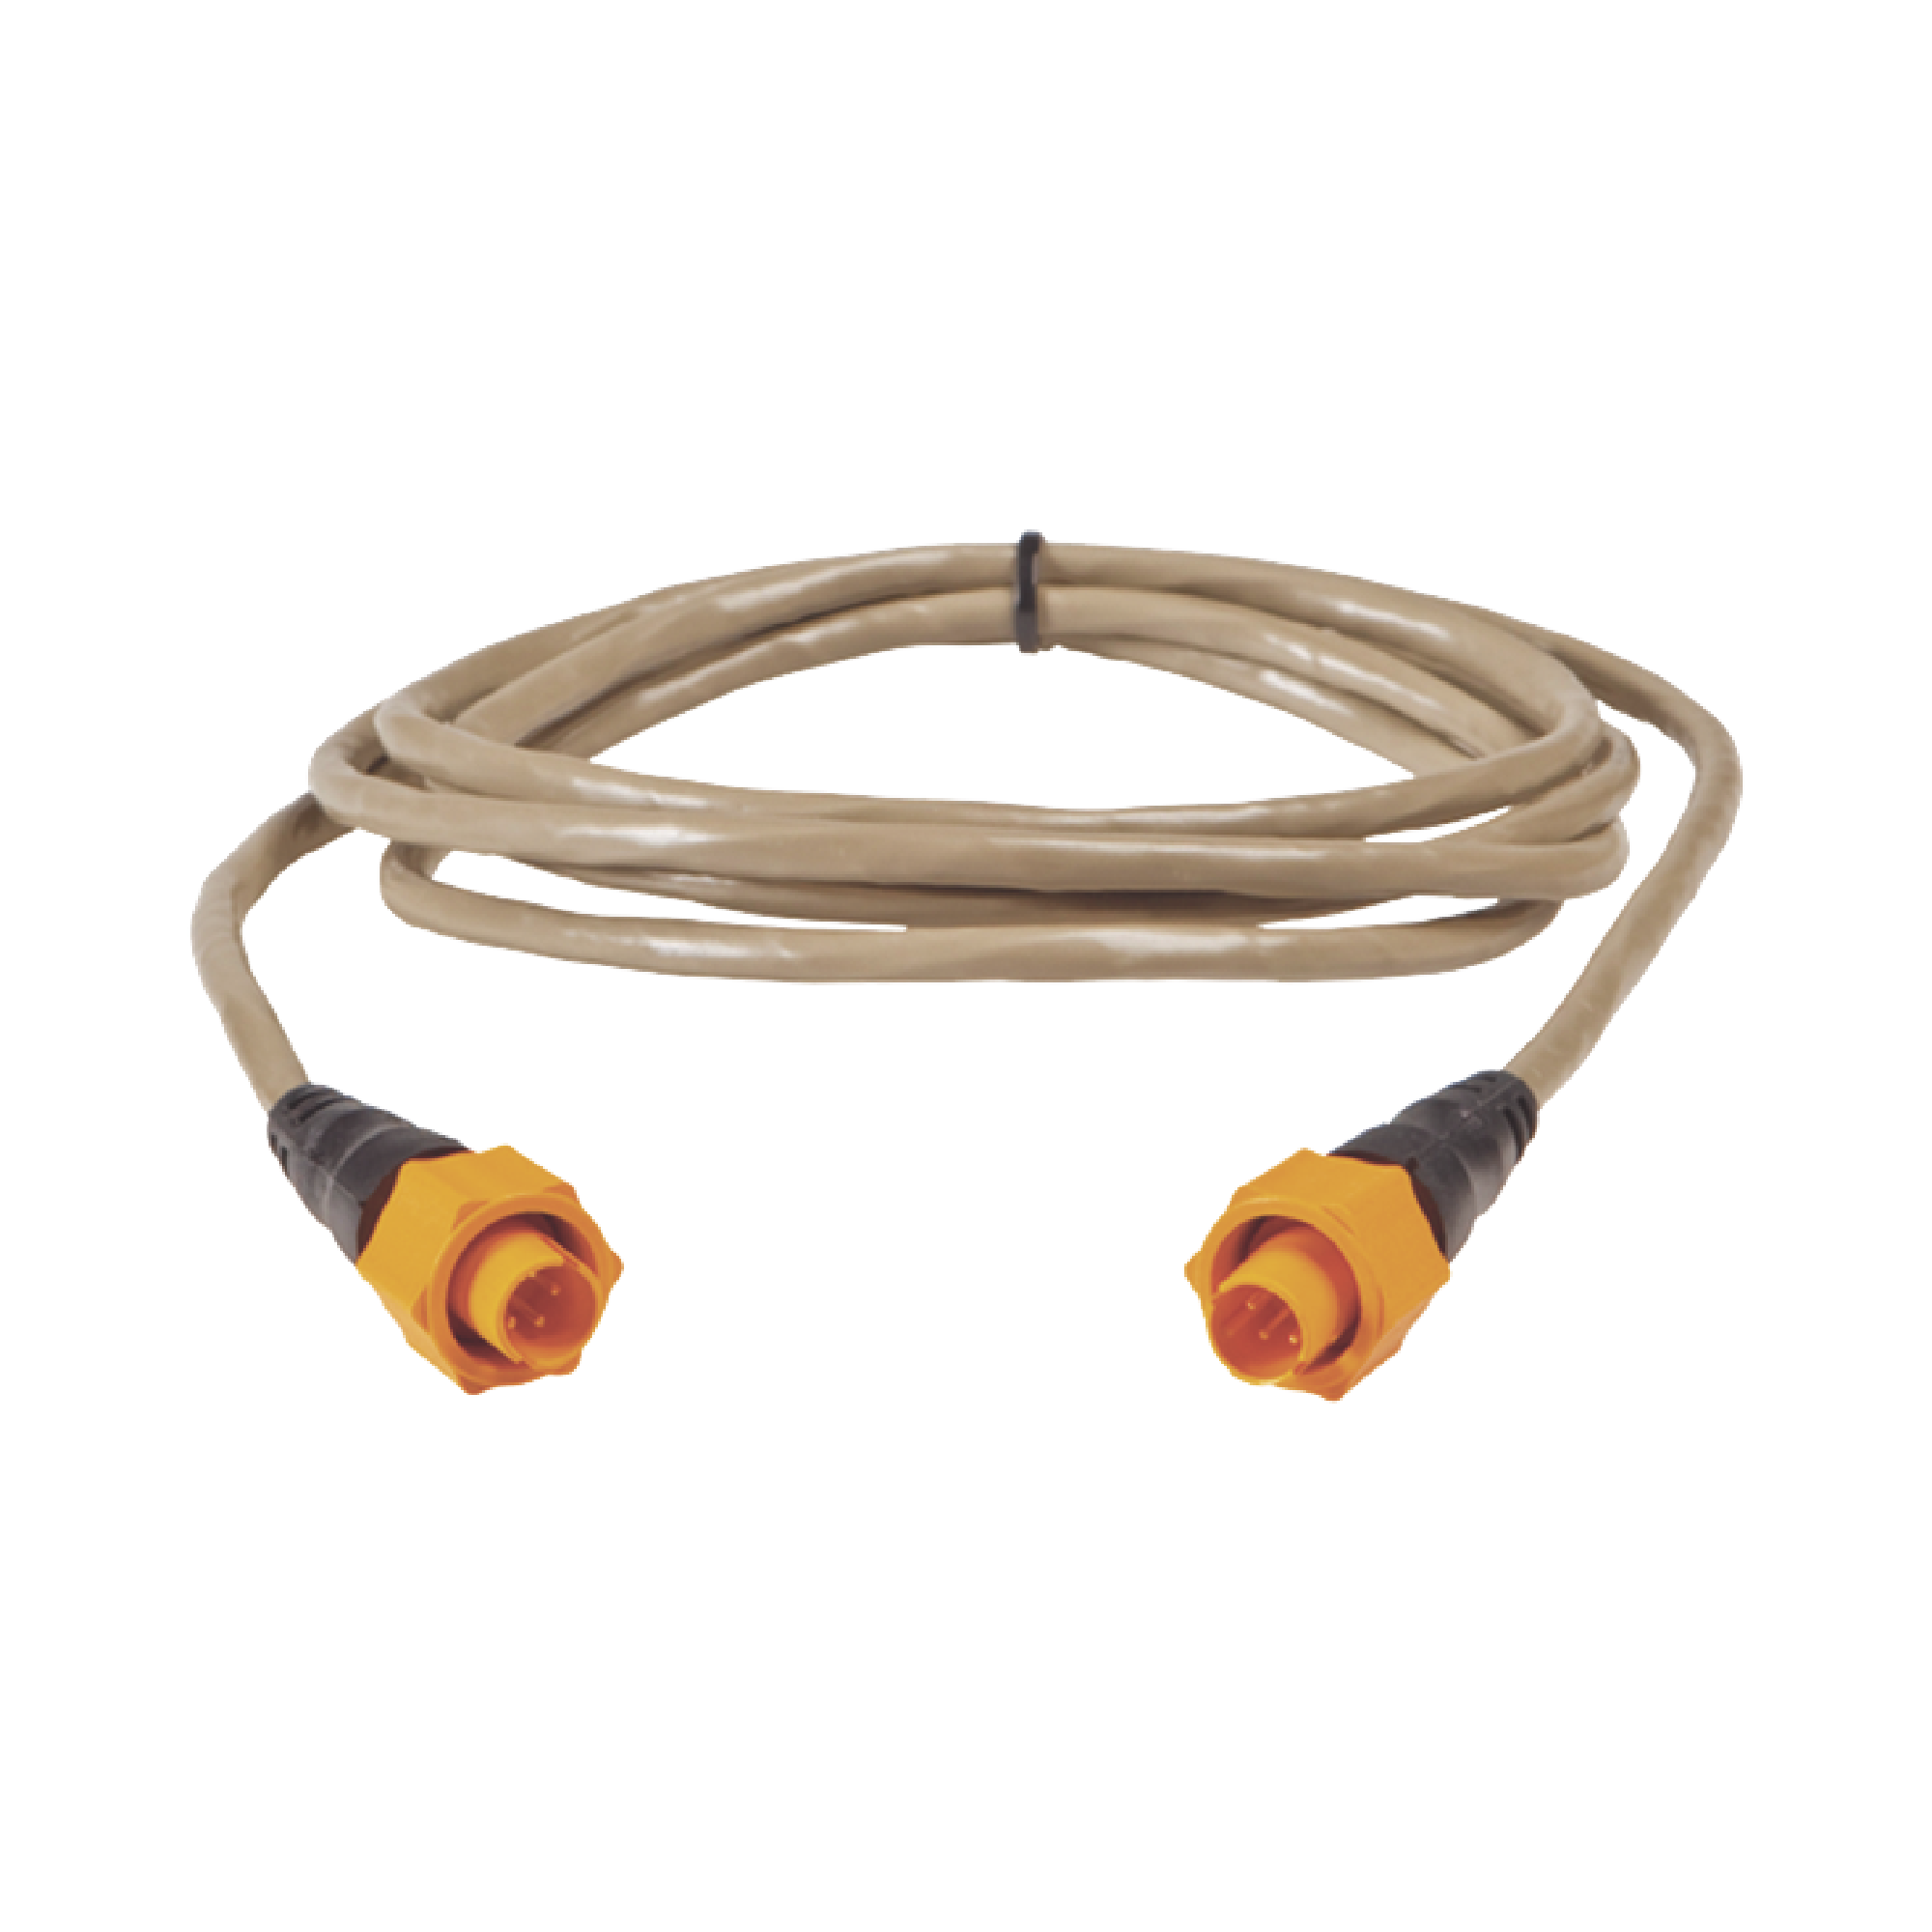 Cable Ethernet Amarillo 5 Pin 15.2 m (50 ft)